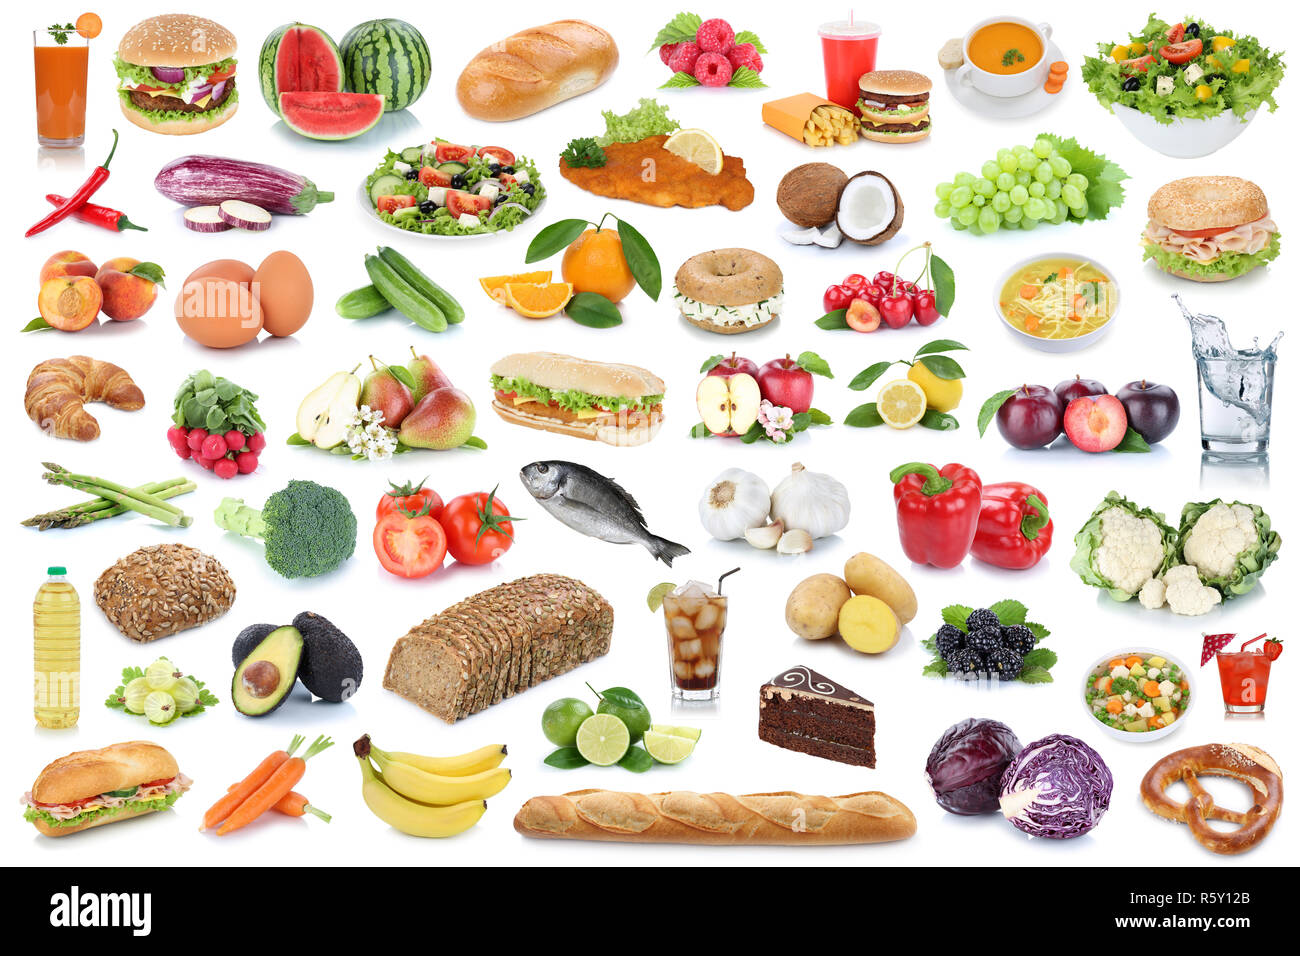 Food Collage Healthy Food Fruits And Vegetables Fruits